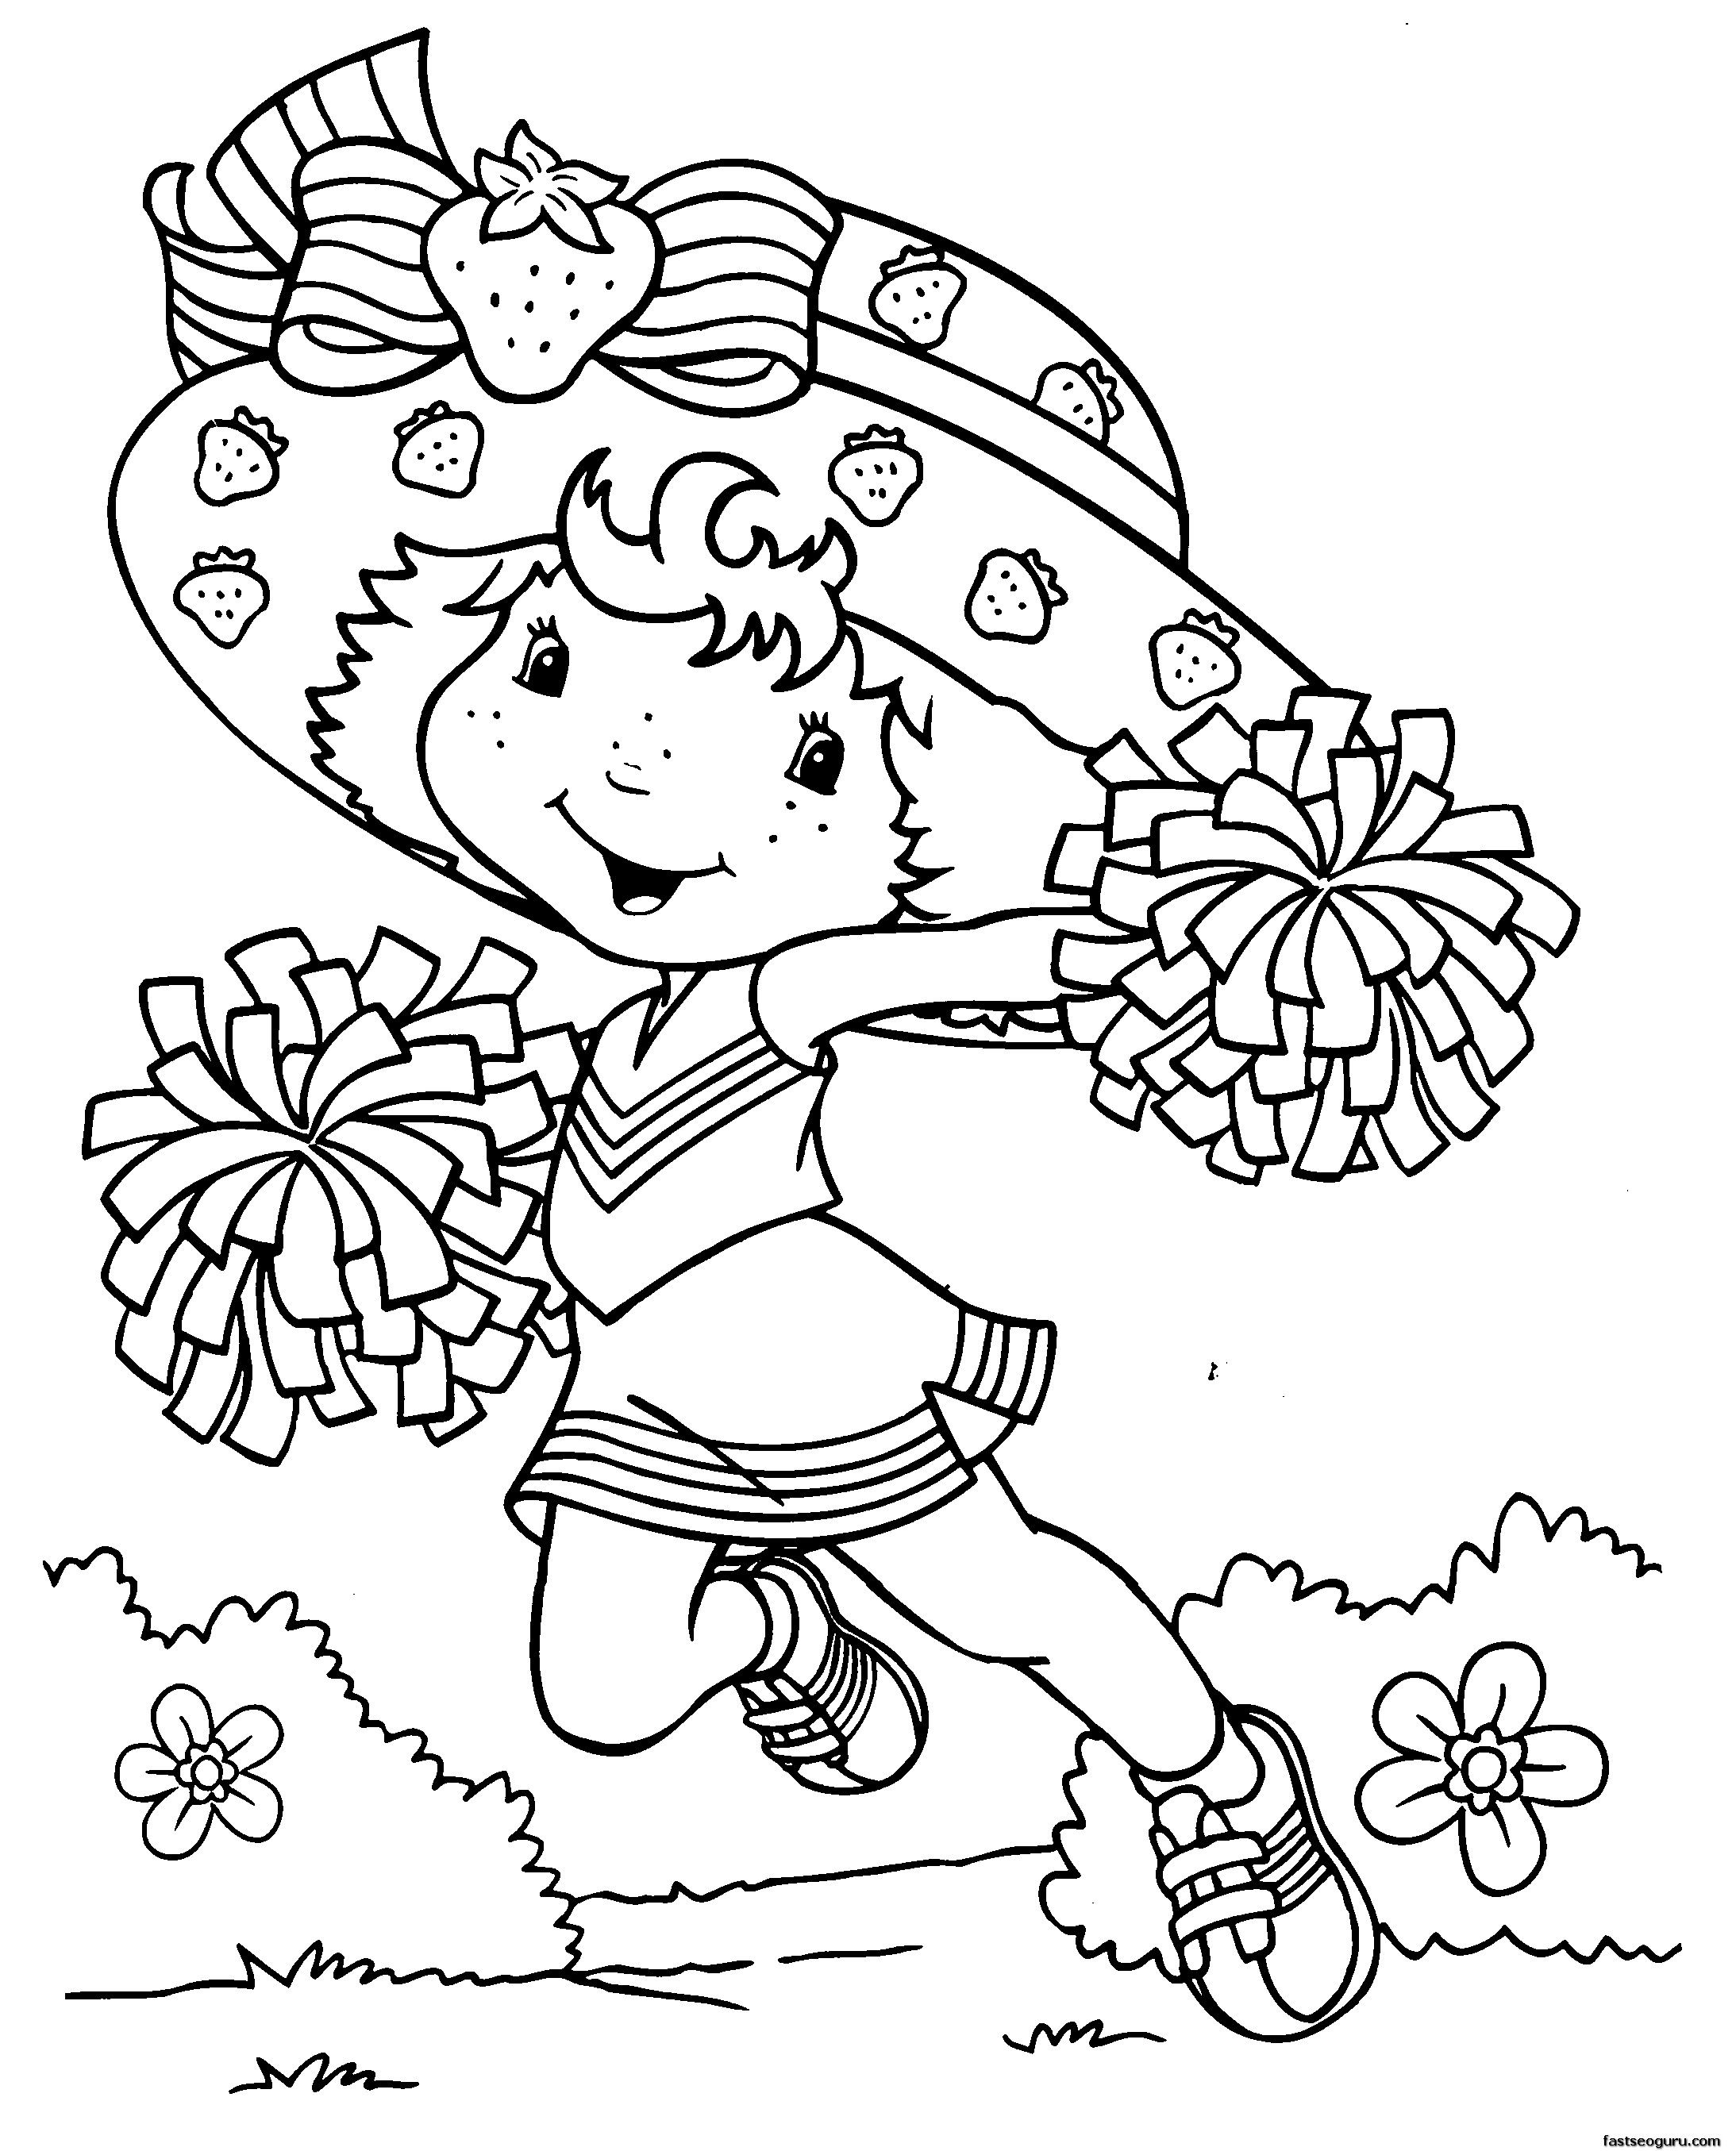 coloring pages for girls pinterest tumblr google yahoo imgur wallpapers coloring pages for girls images - Coloring Books For Girls